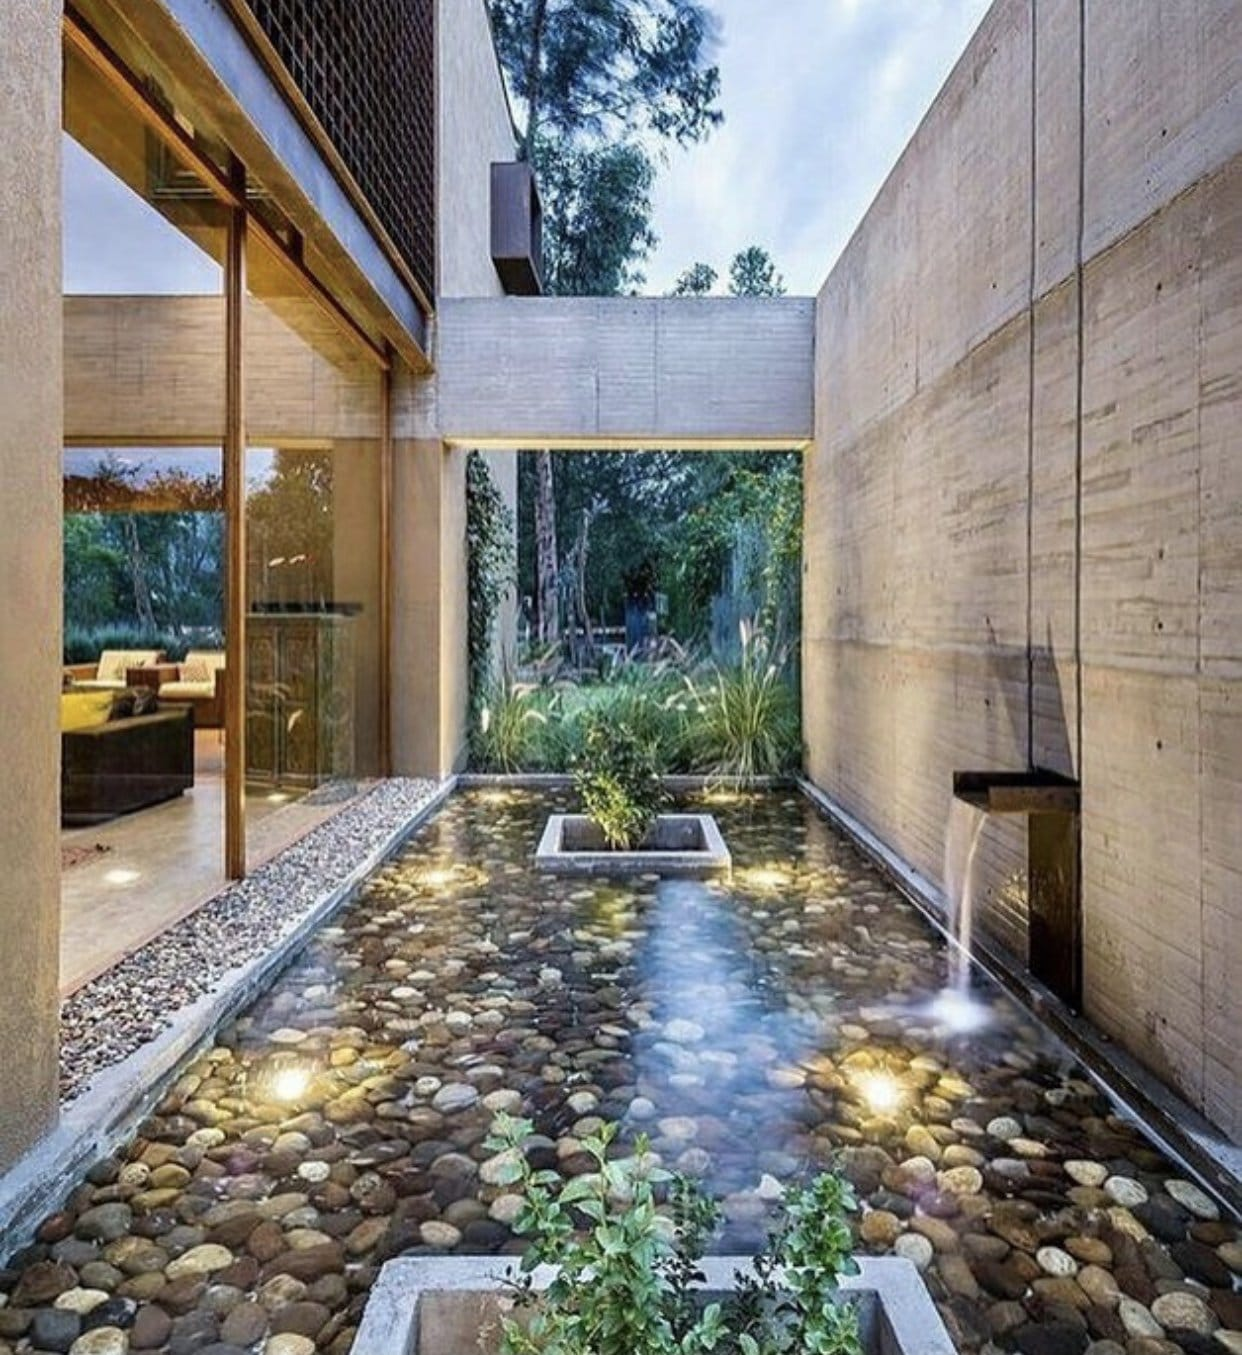 Biophilic design with water features